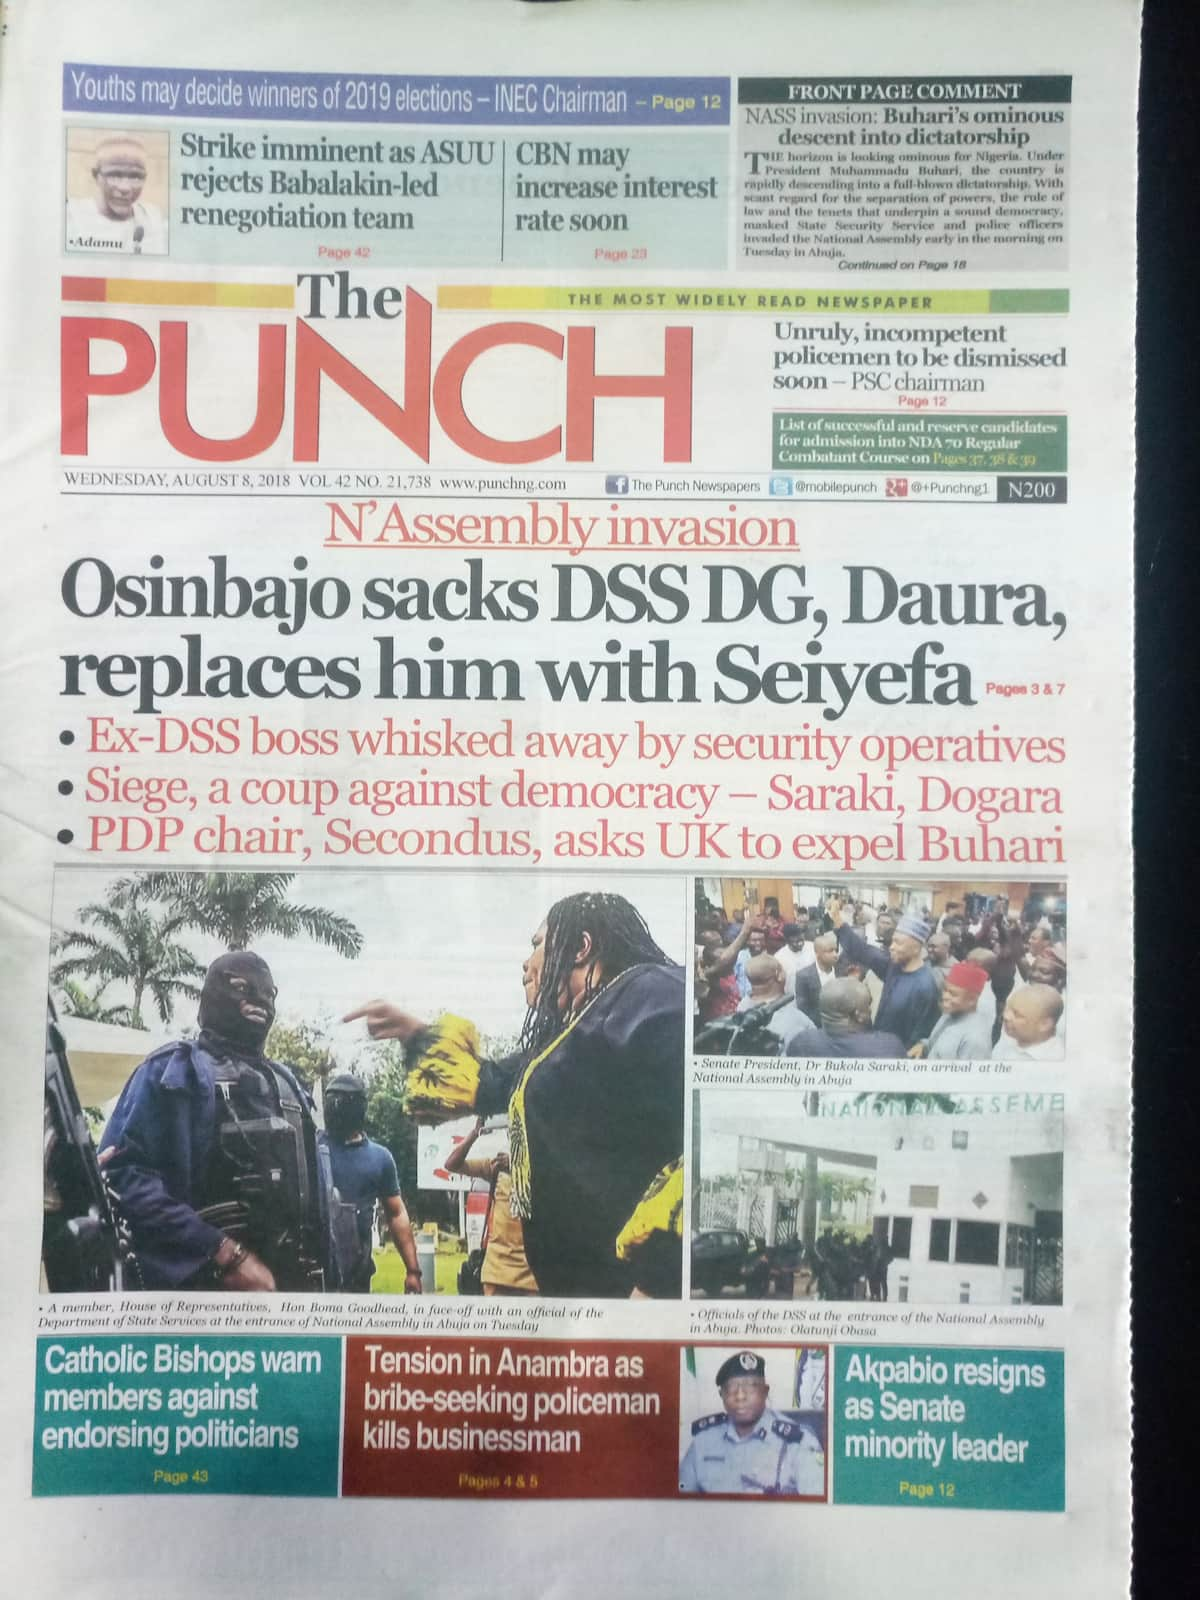 The Punch newspaper for Wednesday, August 8. Photo credit: snapshot from Legit.ng.